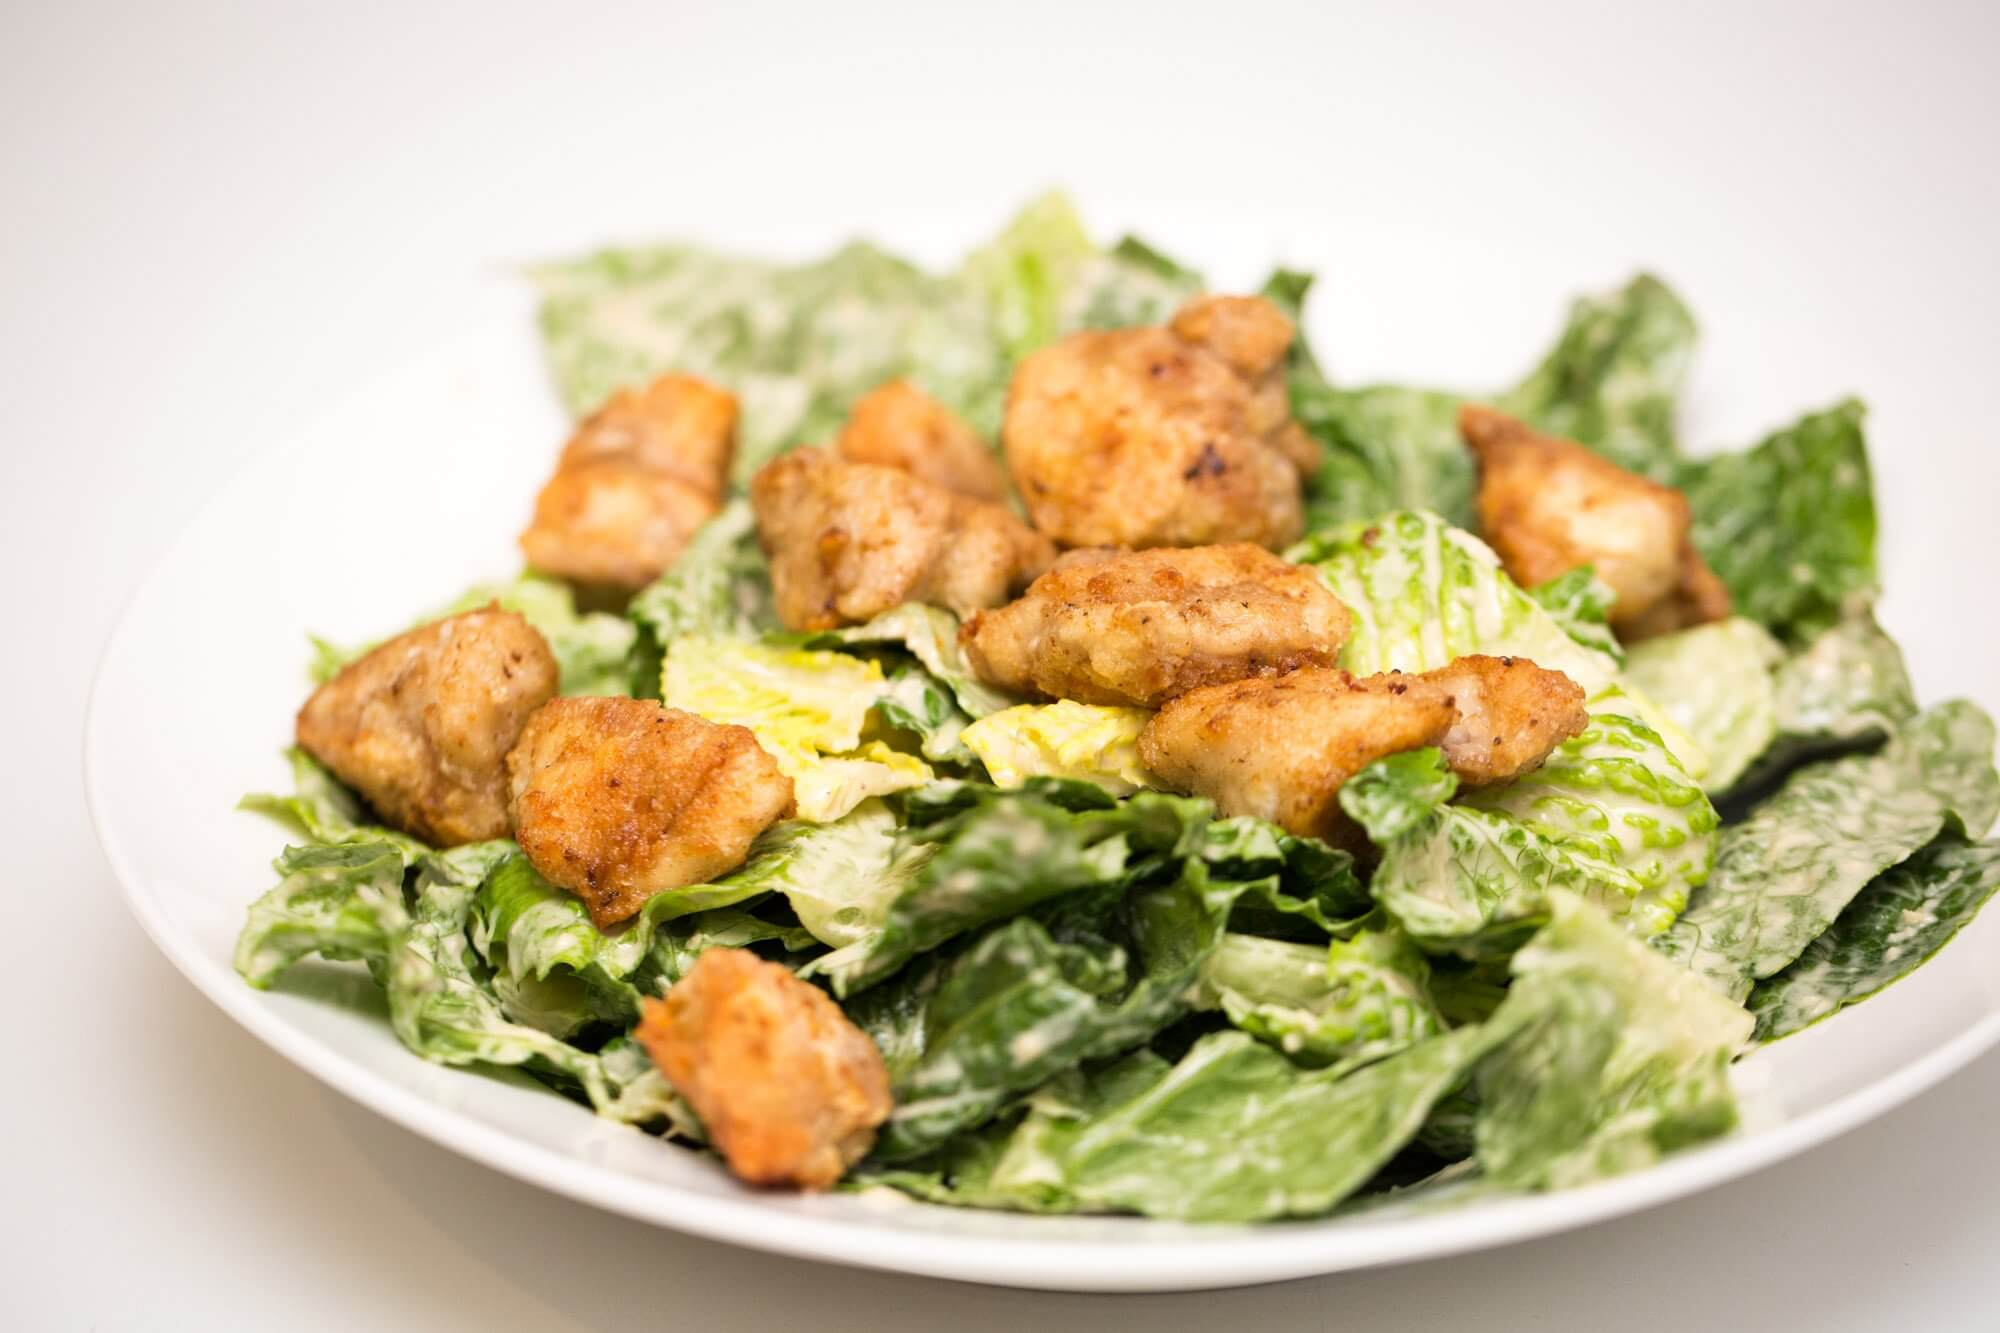 Classic Caesar salad with chicken croutons